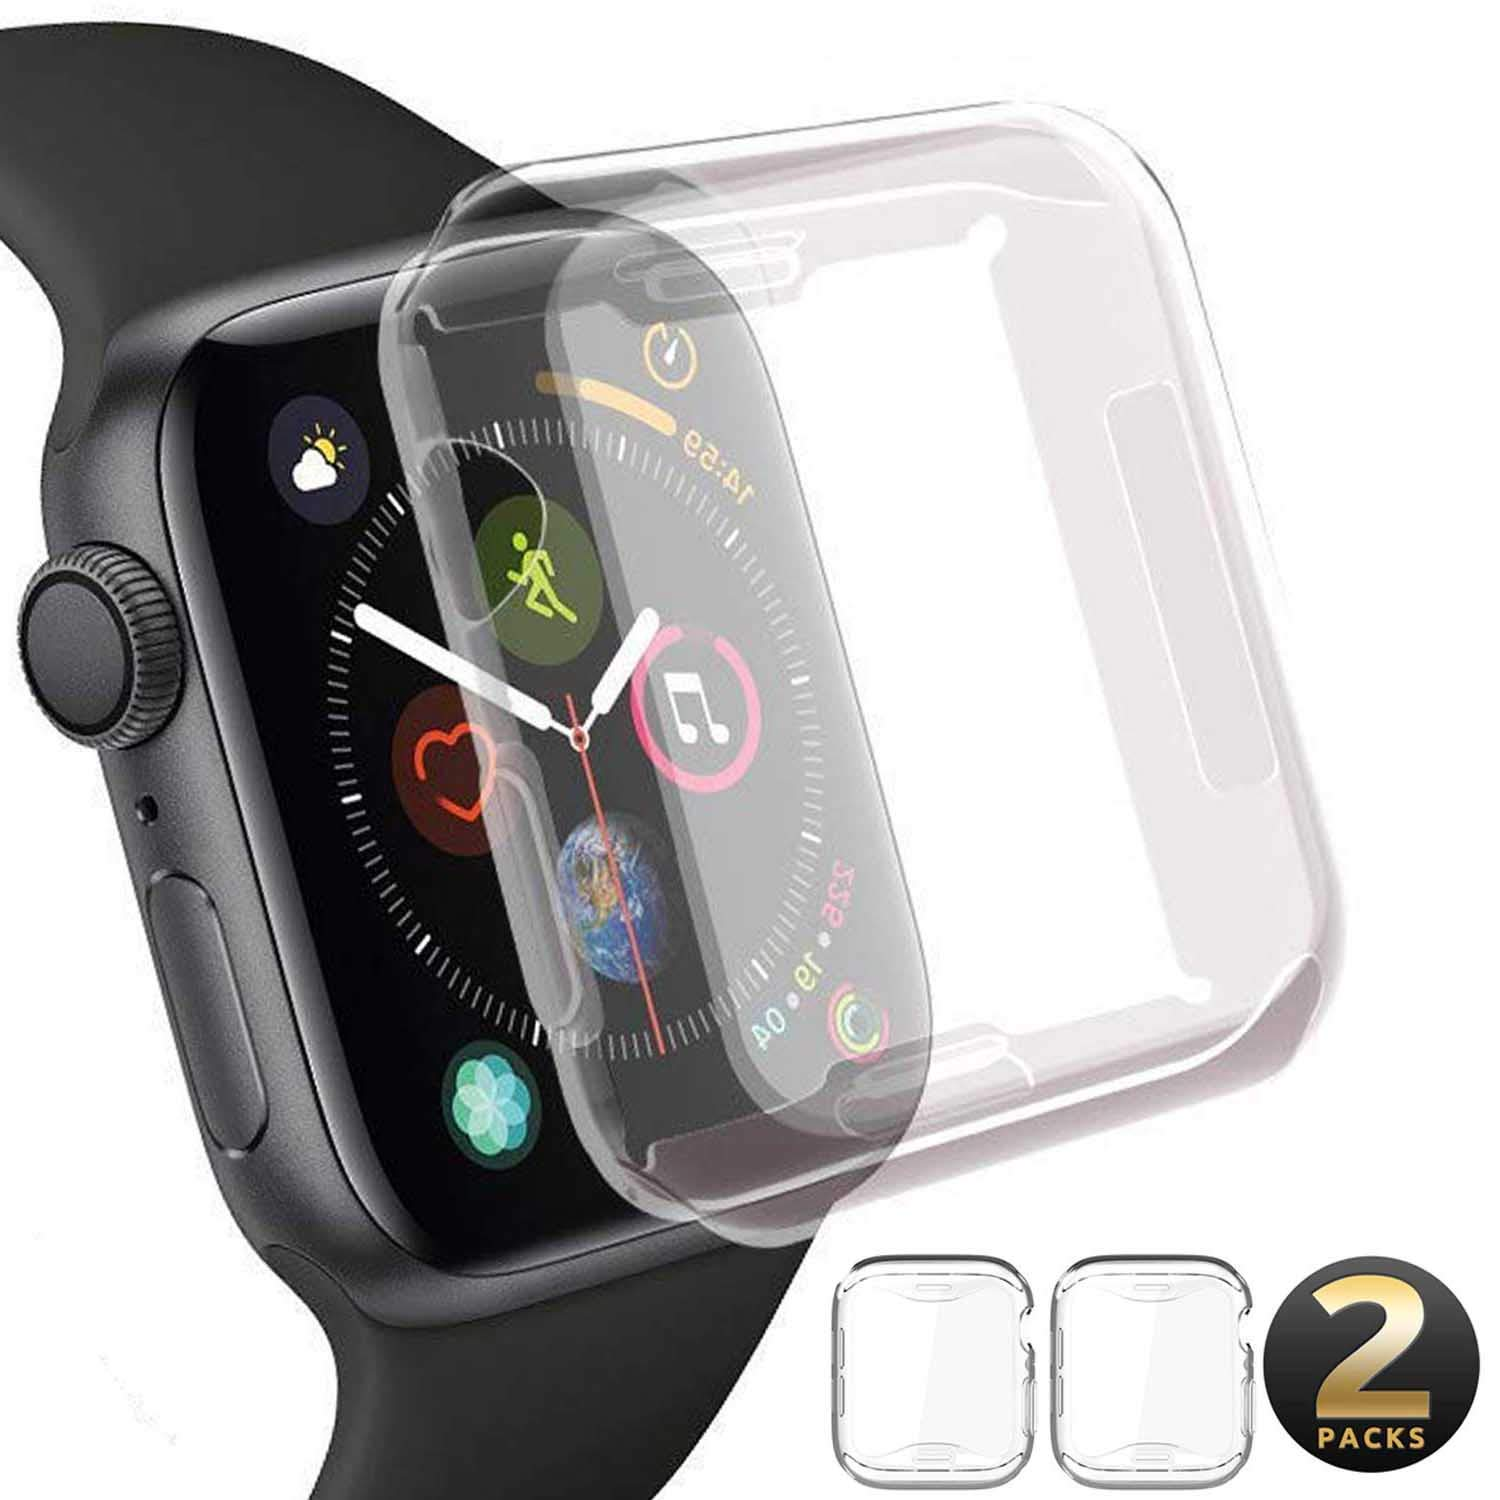 【2Pack】 Wistore Compatible with Apple Watch 4 Case 44mm, Apple Watch Series 4 Screen Protector, 2018 New iWatch Overall Protective Case TPU HD Clear Ultra-Thin Cover for Apple Watch Series 4 (44mm) by Wistore (Image #1)